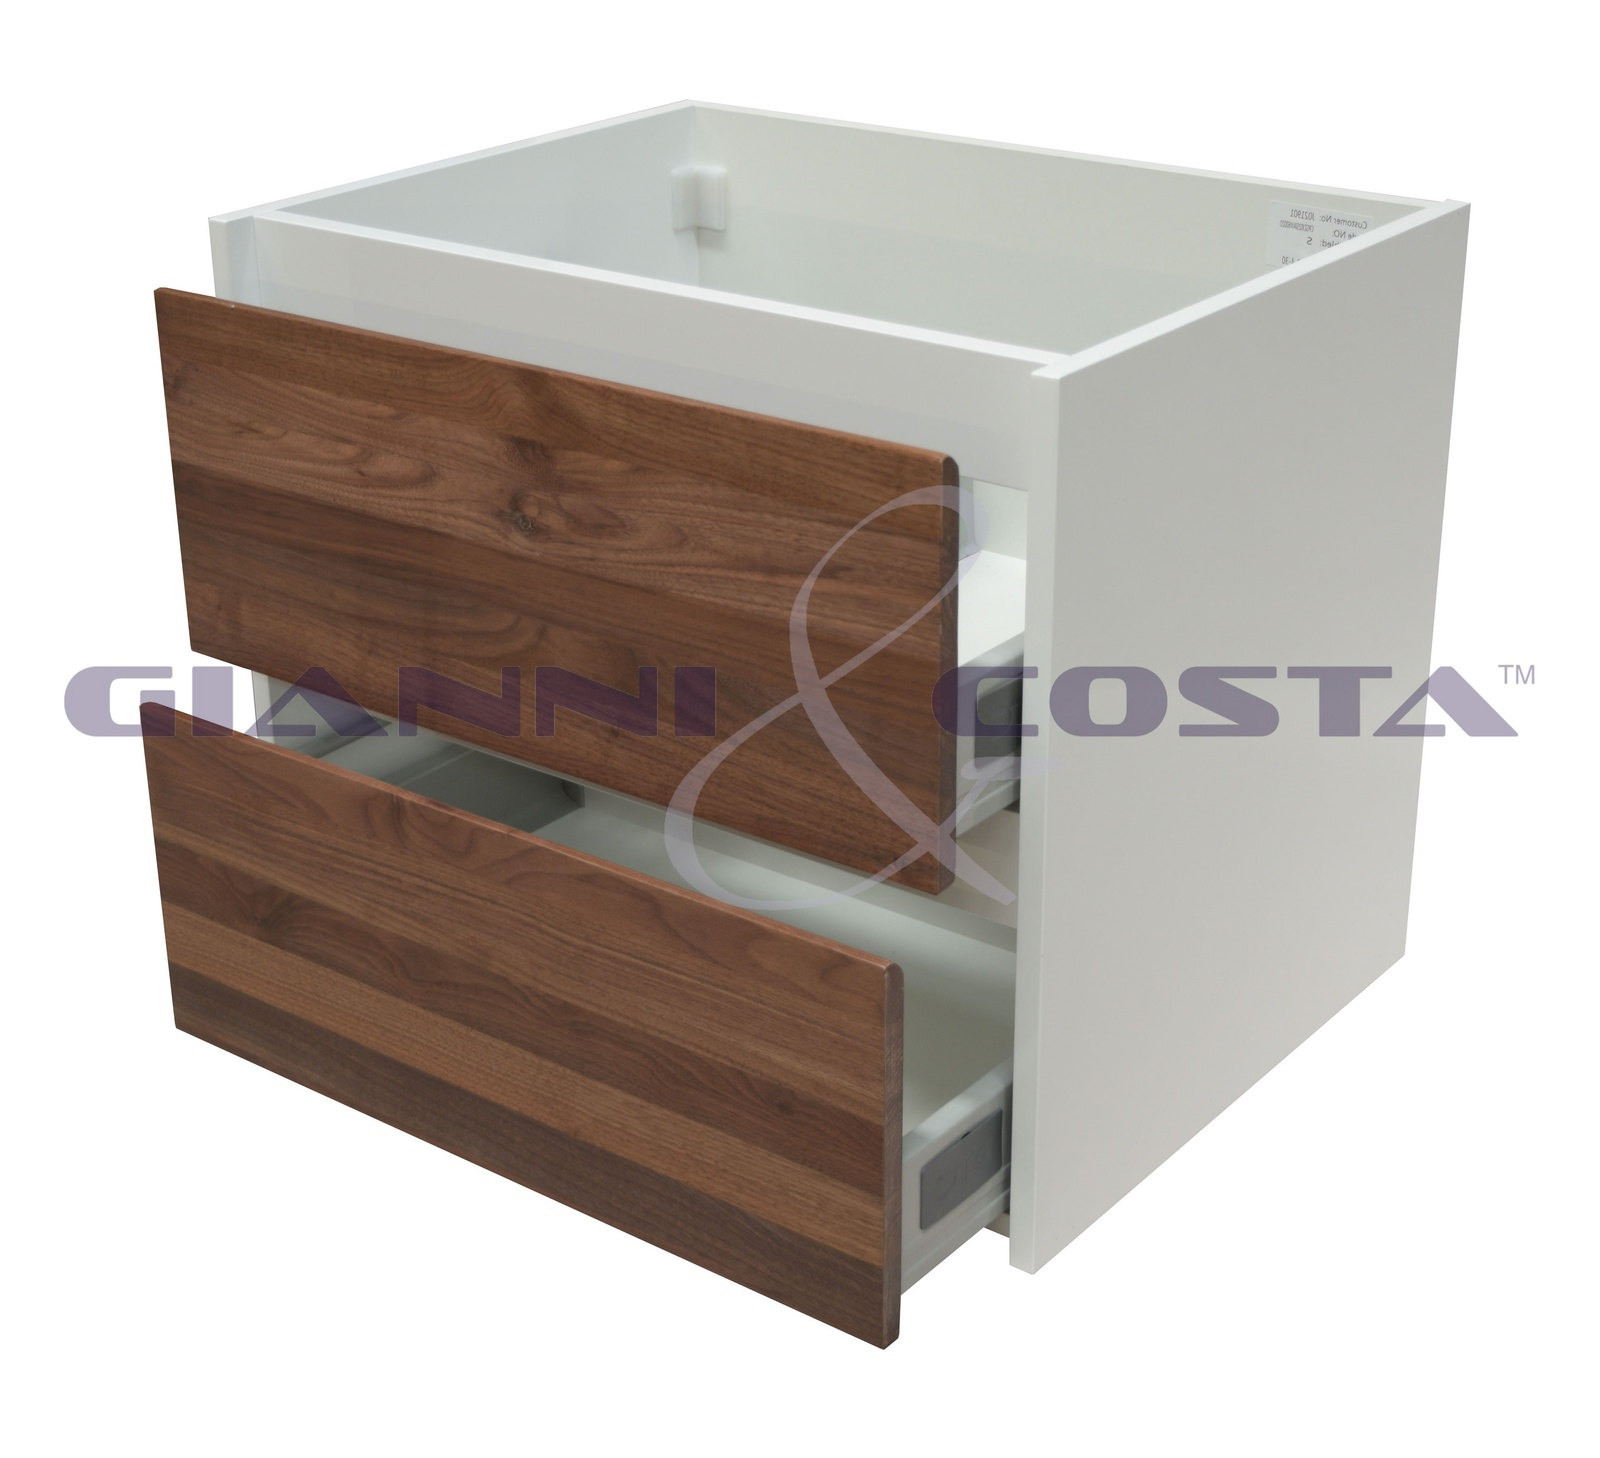 Gloss White Wall Hung Bathroom Cabinet Model Sia 590mm - Walnut Timber